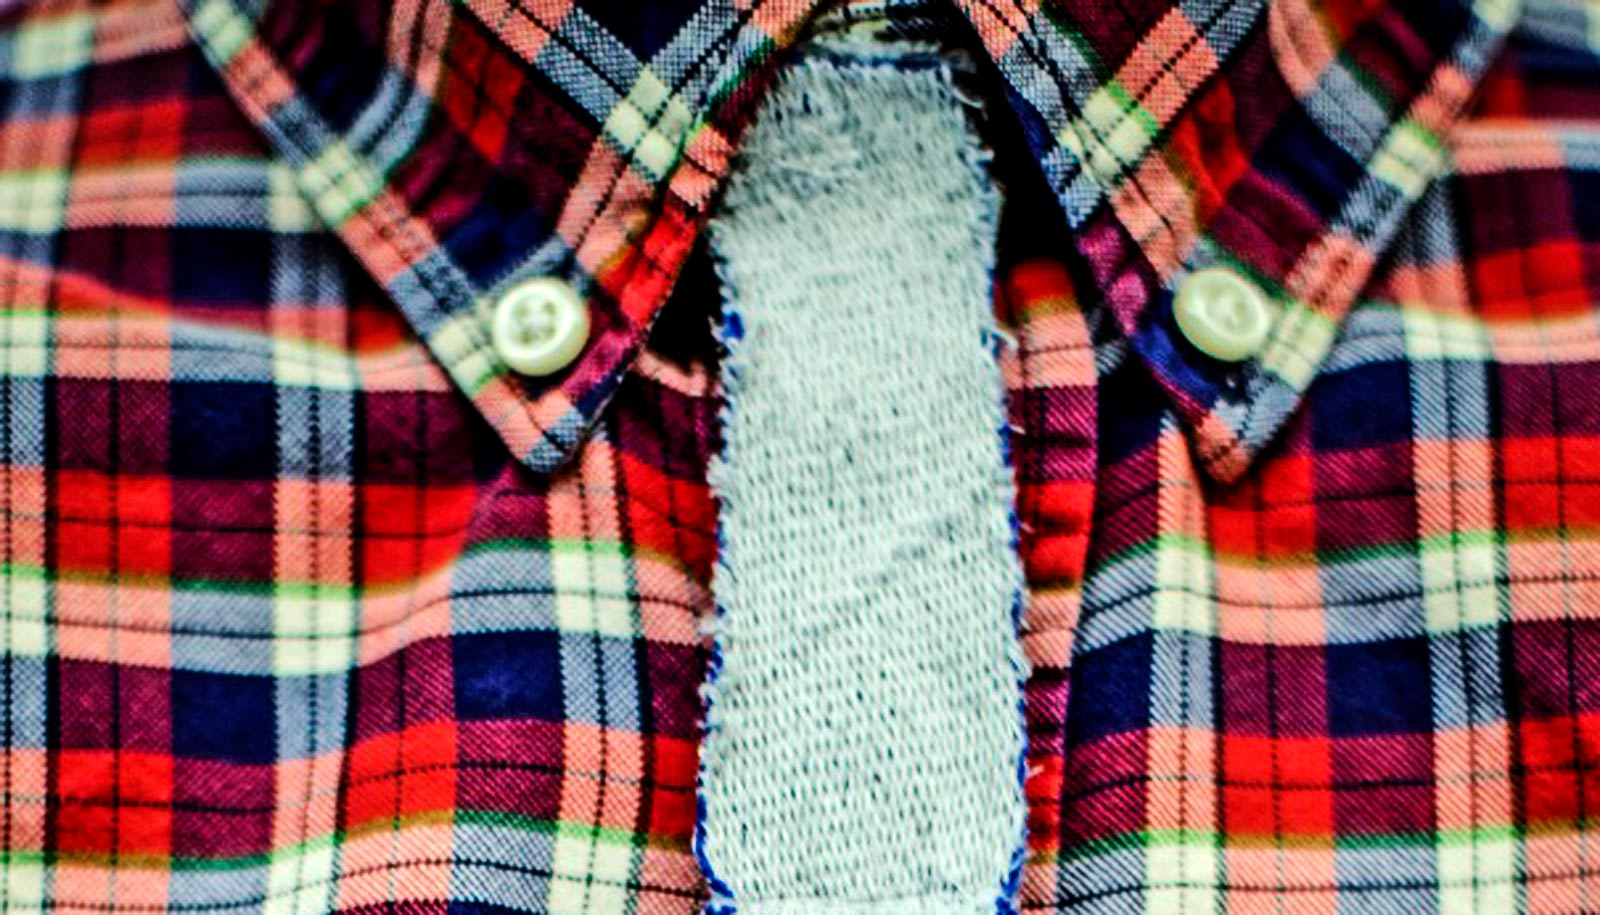 magnetized fabric tie on plaid flannel shirt